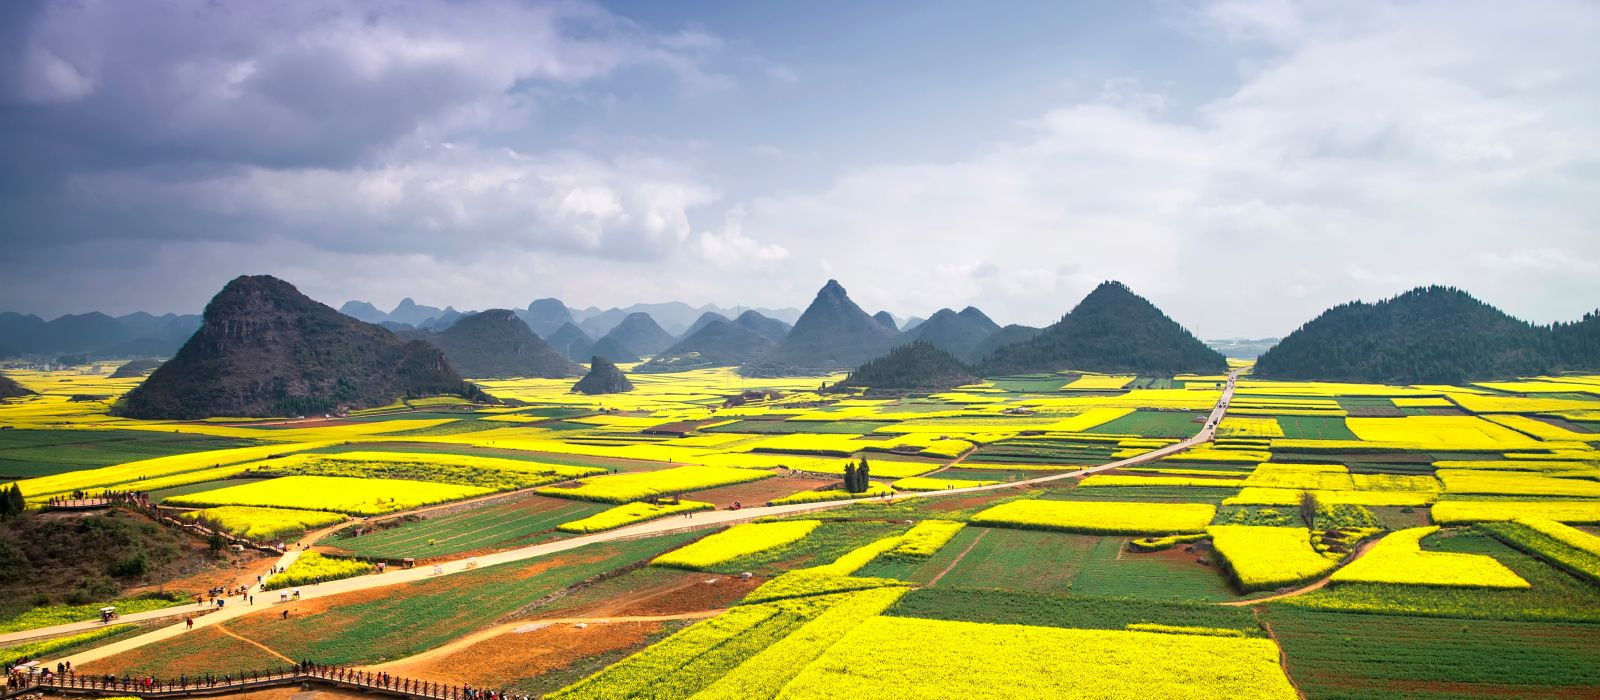 China's Imperial Cities & Legendary Landscapes Tour Trip 4